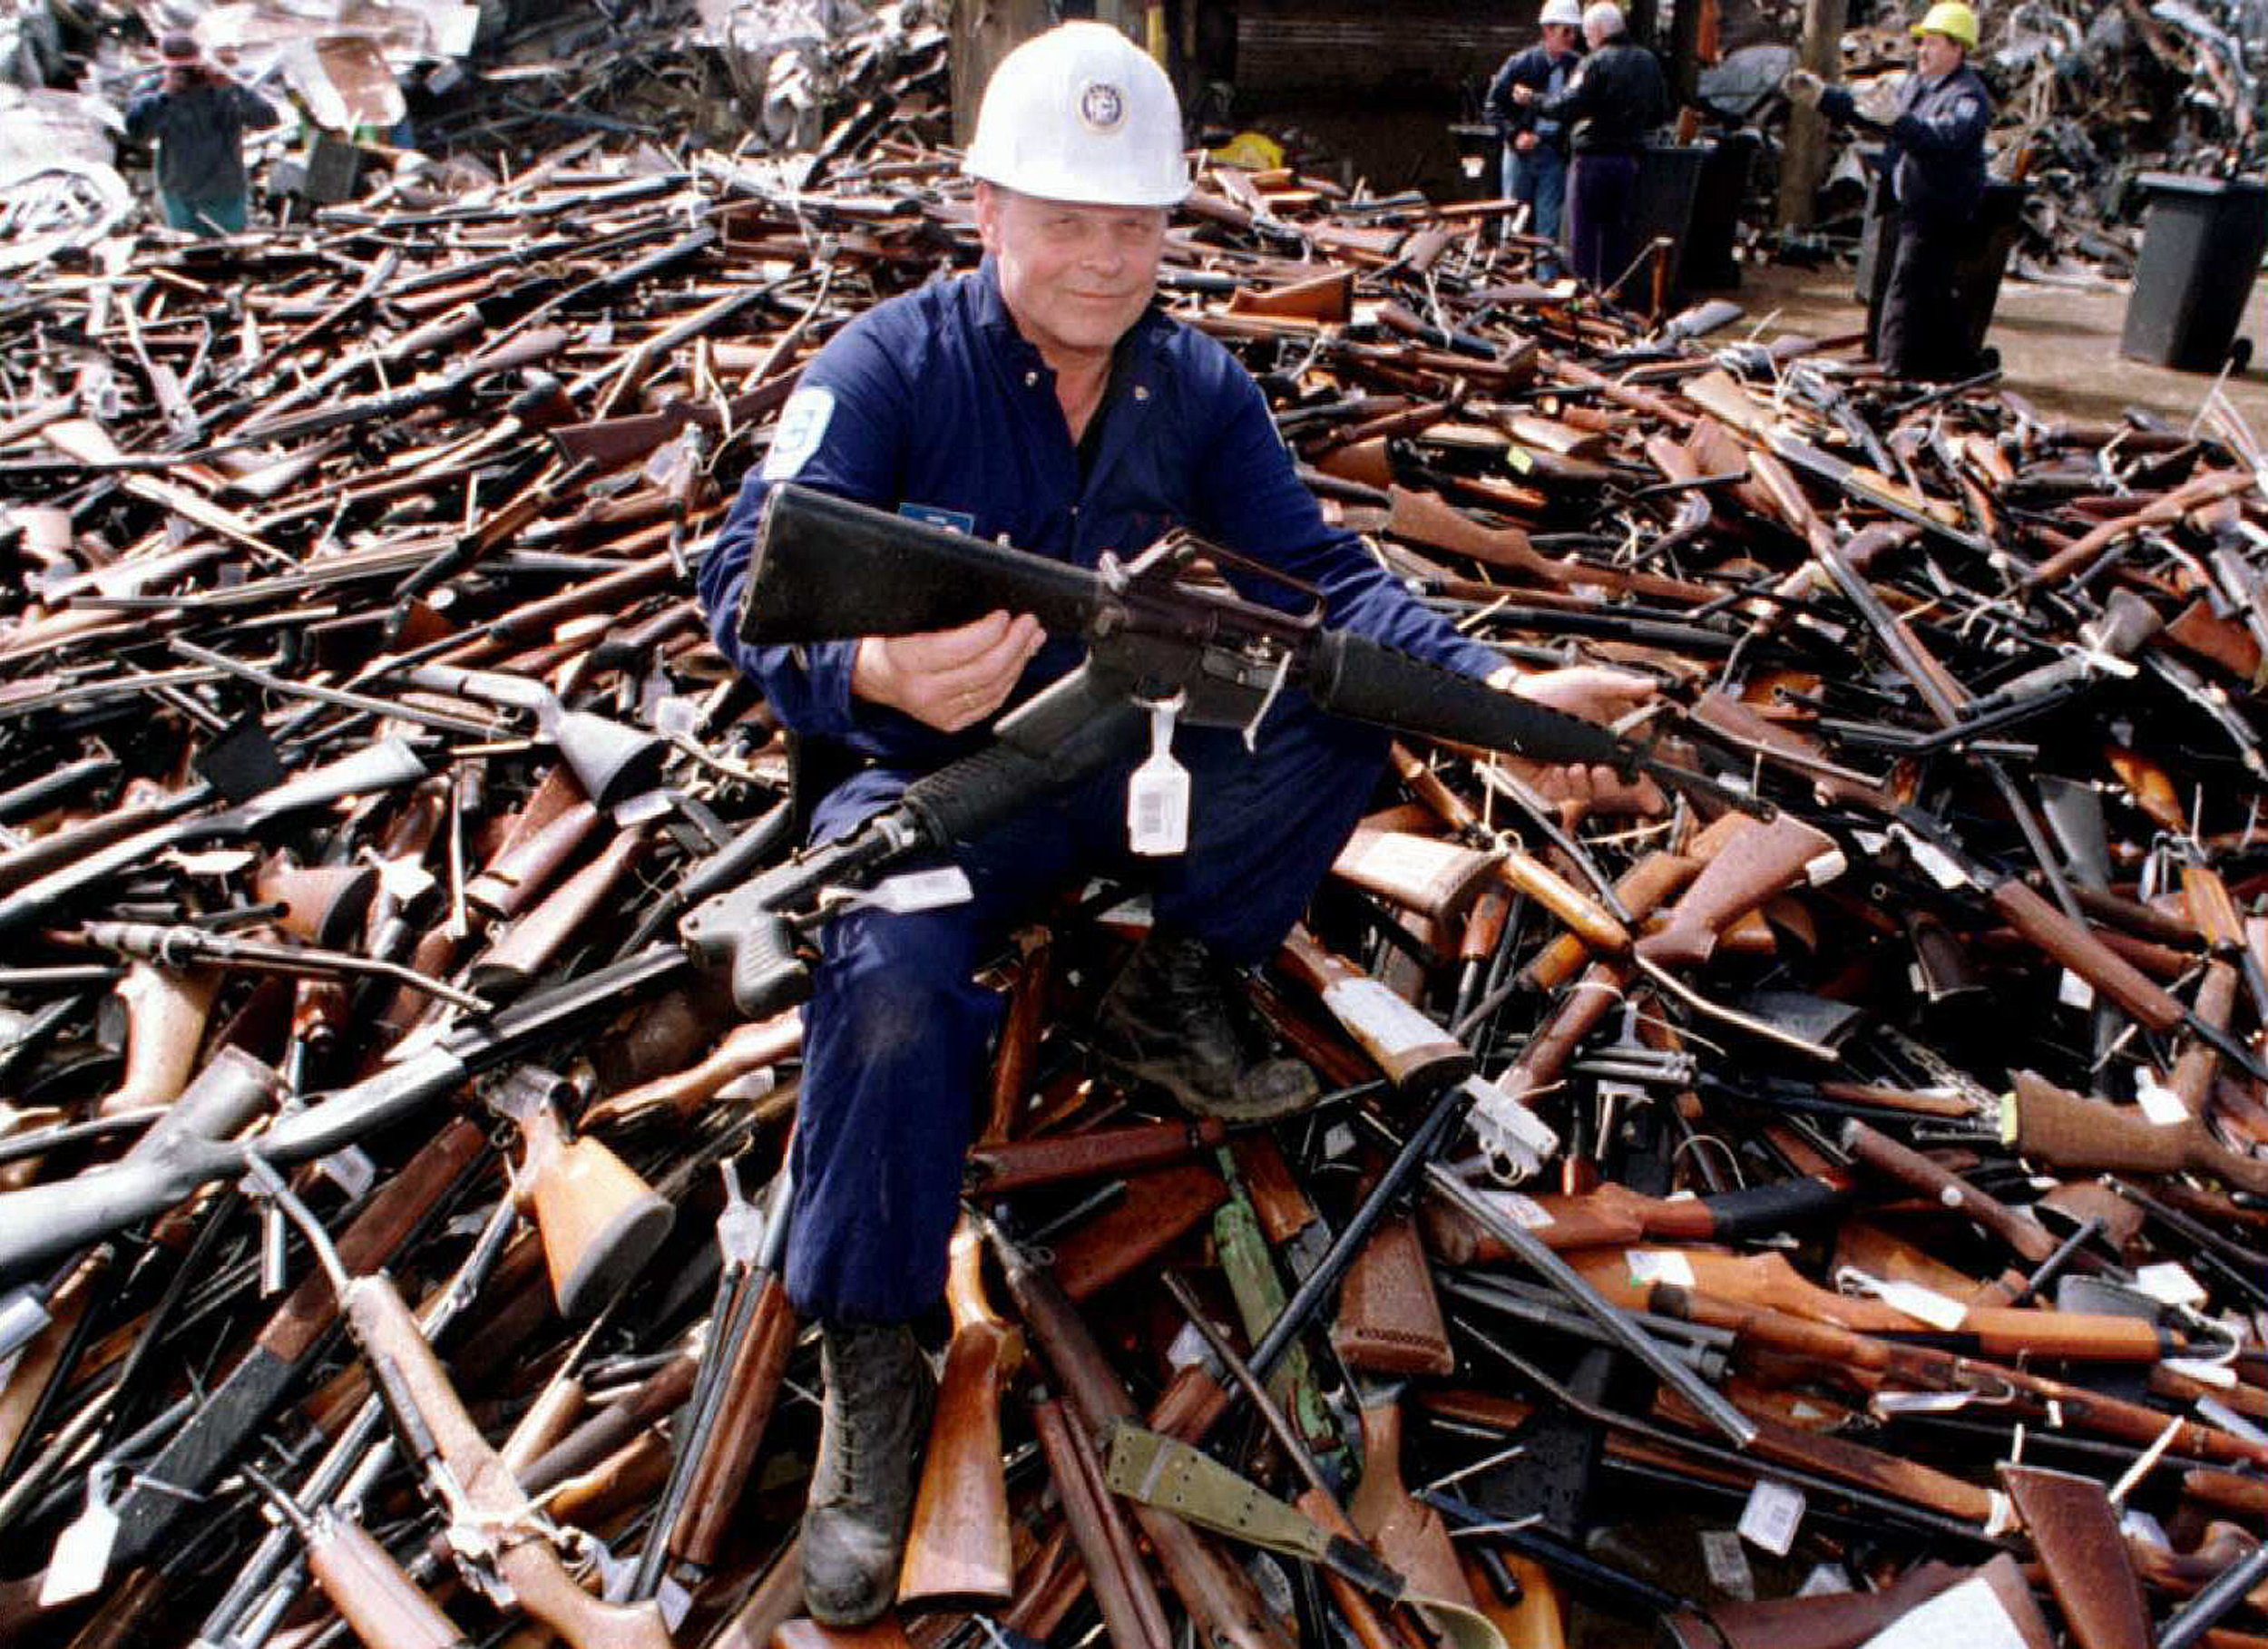 TO GO WITH US-shooting-guns-Australia,FOCUS by Martin Parryn(FILES) This file photo taken on September 8, 1996 shows Norm Legg, a project supervisor with a local security firm, holding up an armalite rifle which is similar to the one used in the Port Arthur massacre and which was handed in for scrap in Melbourne after Australia banned all automatic and semi-automatic rifles in the aftermath of the Port Arthur shooting. When Martin Bryant massacred 35 people with semi-automatic weapons at Port Arthur in 1996, then-Australian prime minister John Howard reacted swiftly by pushing for tough new national gun laws. Within a year gun licences had been tightened, a weapons buy-back was enacted and an amnesty launched for anyone holding illegal arms, moves that took more than 600,000 guns out of action. AFP PHOTO / FILES / William WEST (Photo credit should read WILLIAM WEST/AFP/Getty Images)